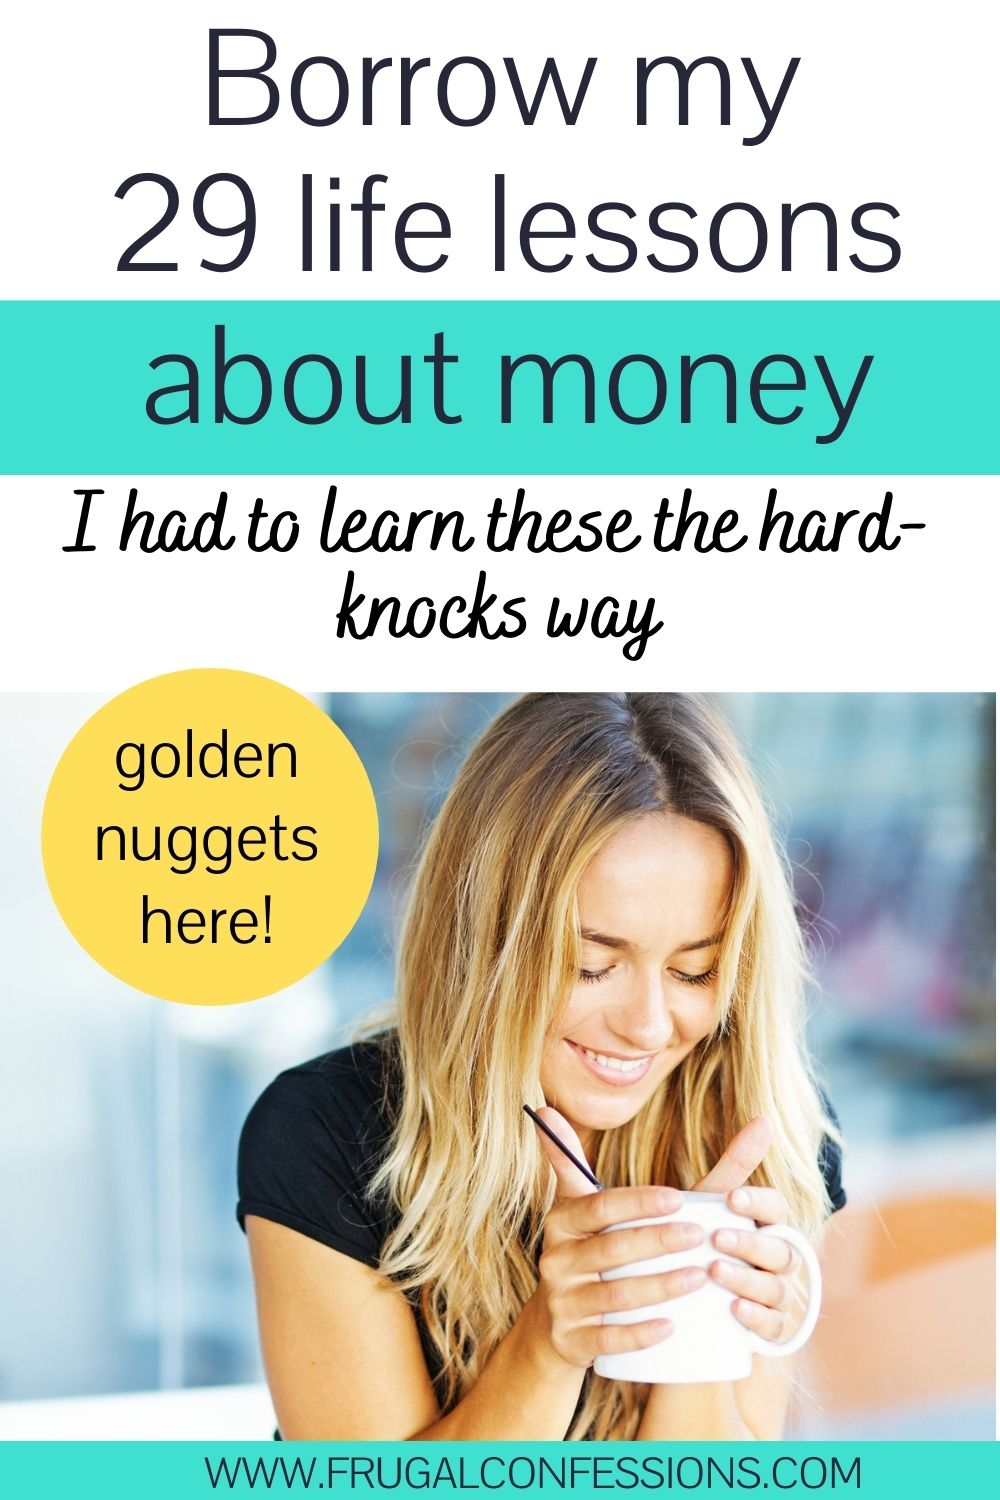 """woman smiling, looking down at coffee mug, text overlay """"borrow my 29 life lessons about money"""""""